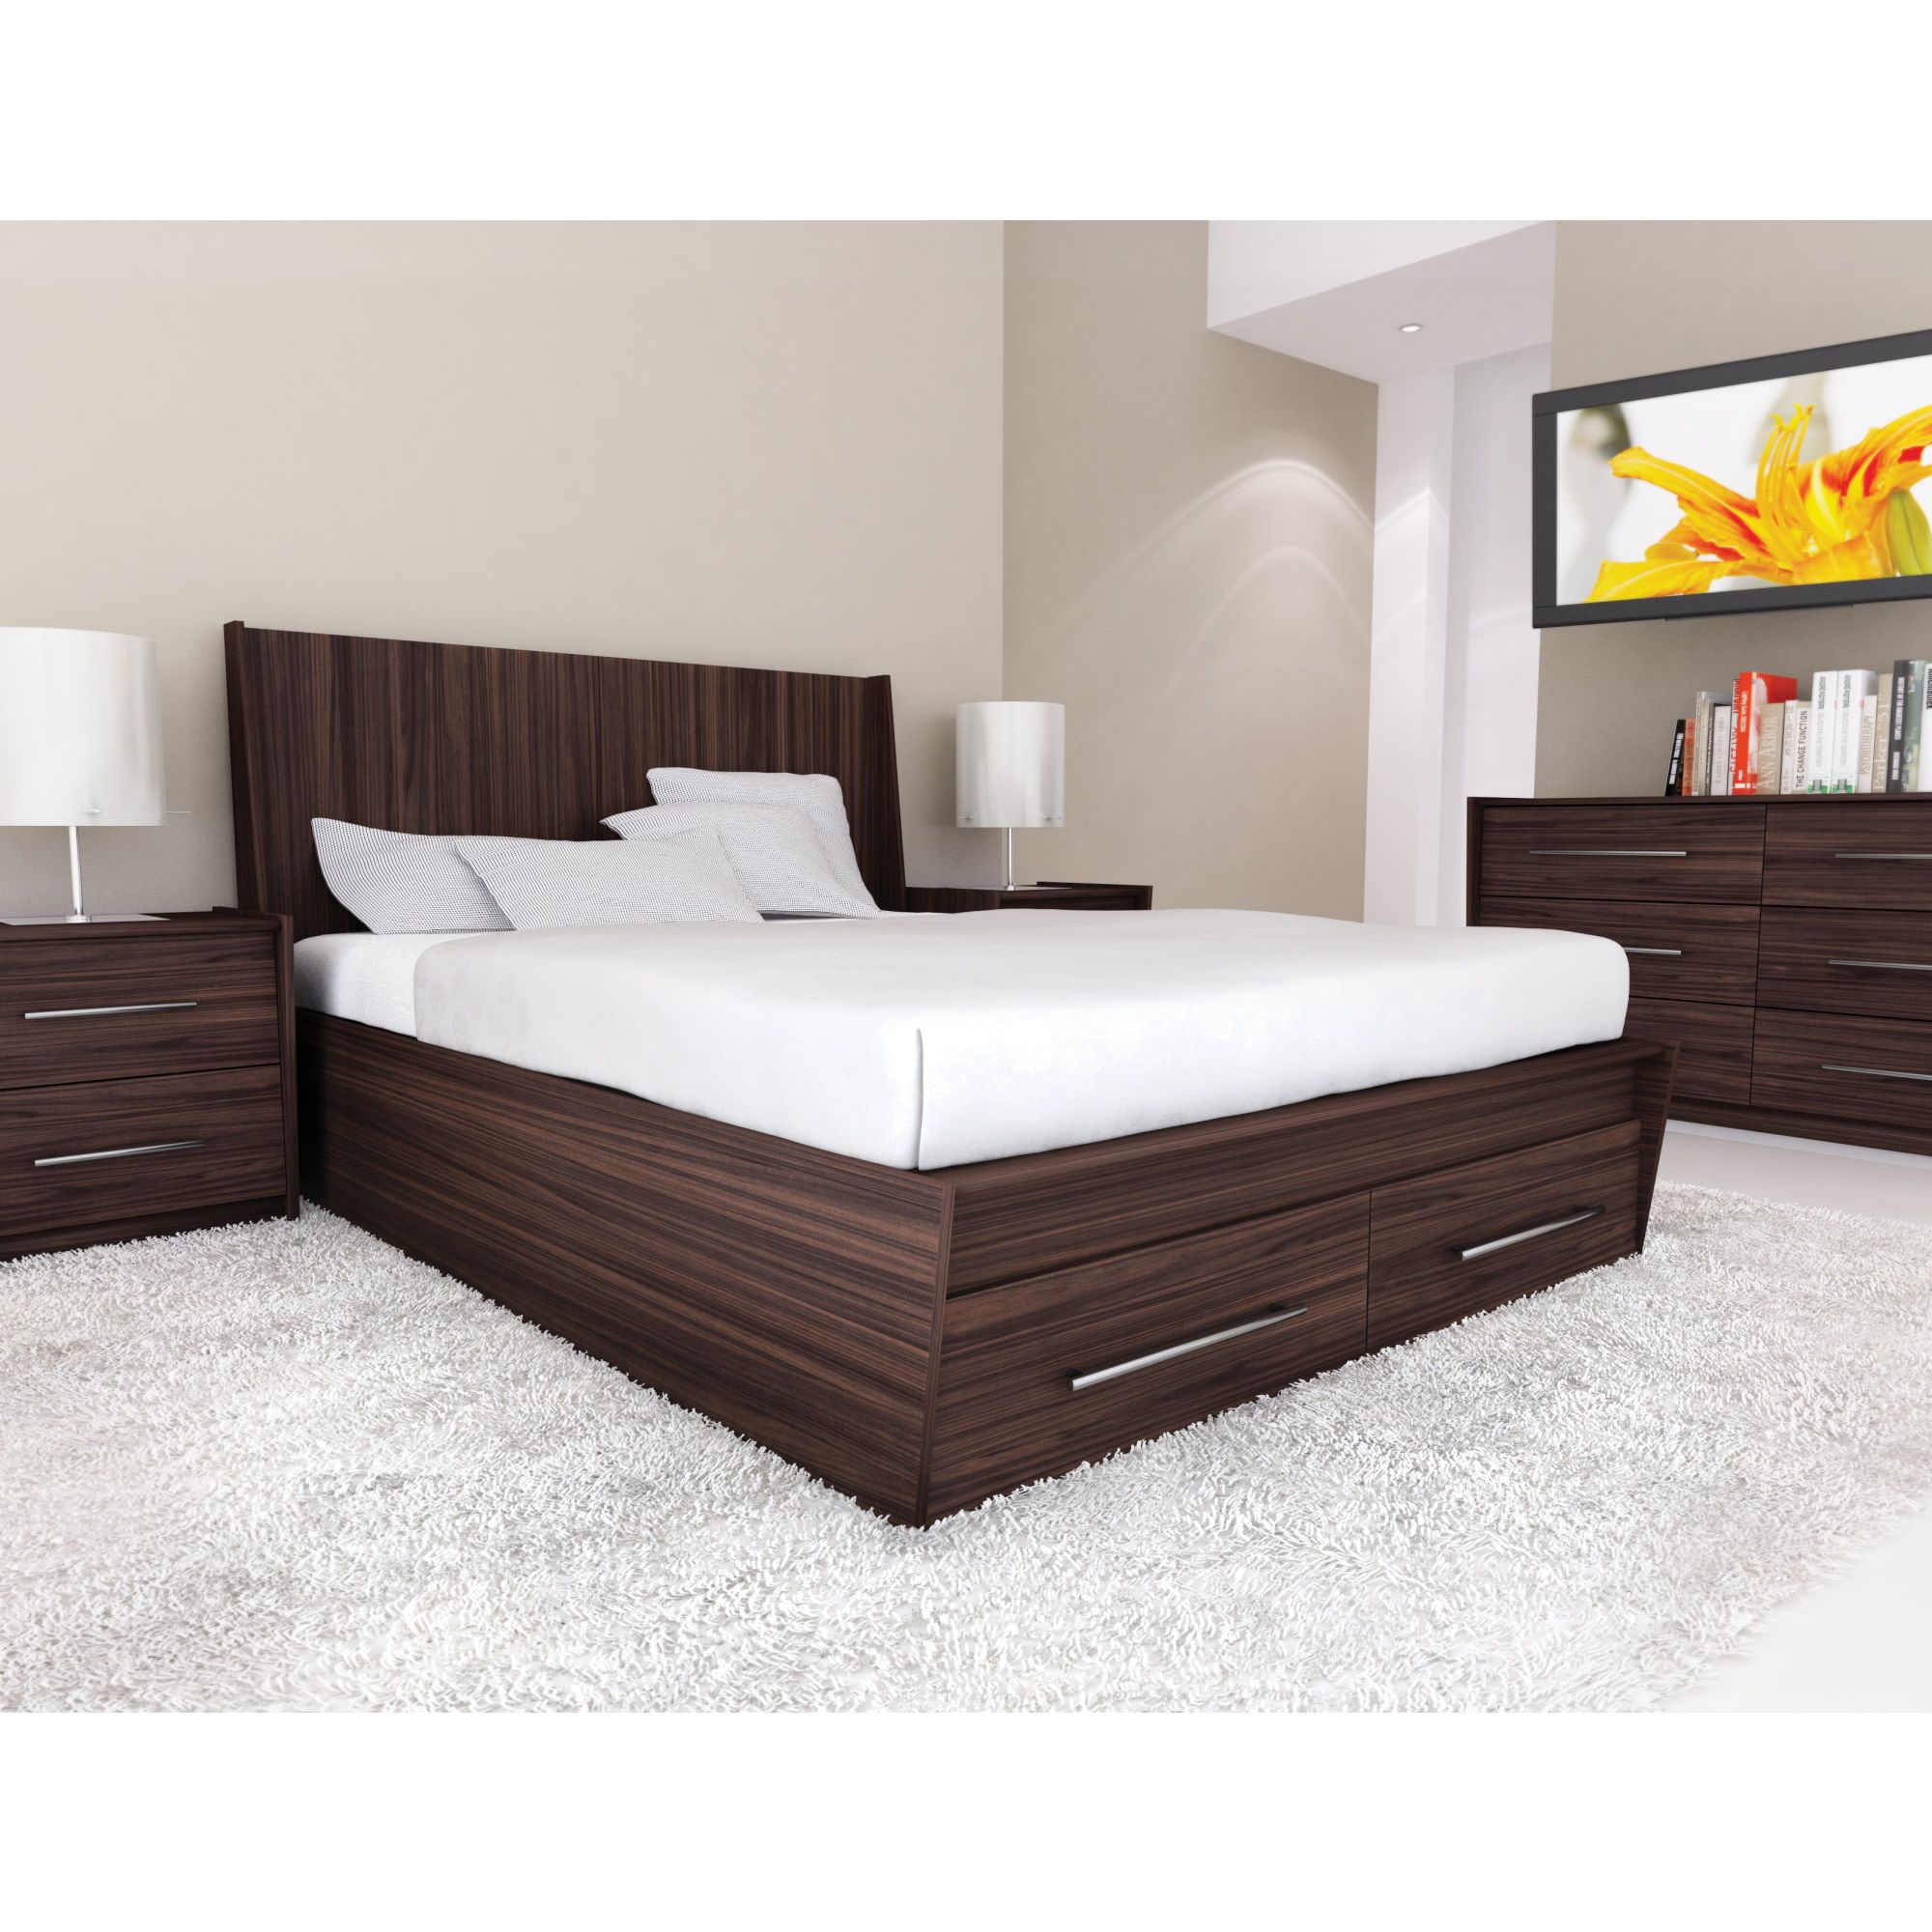 Bed designs for your comfortable bedroom interior design for Bedroom furniture layout